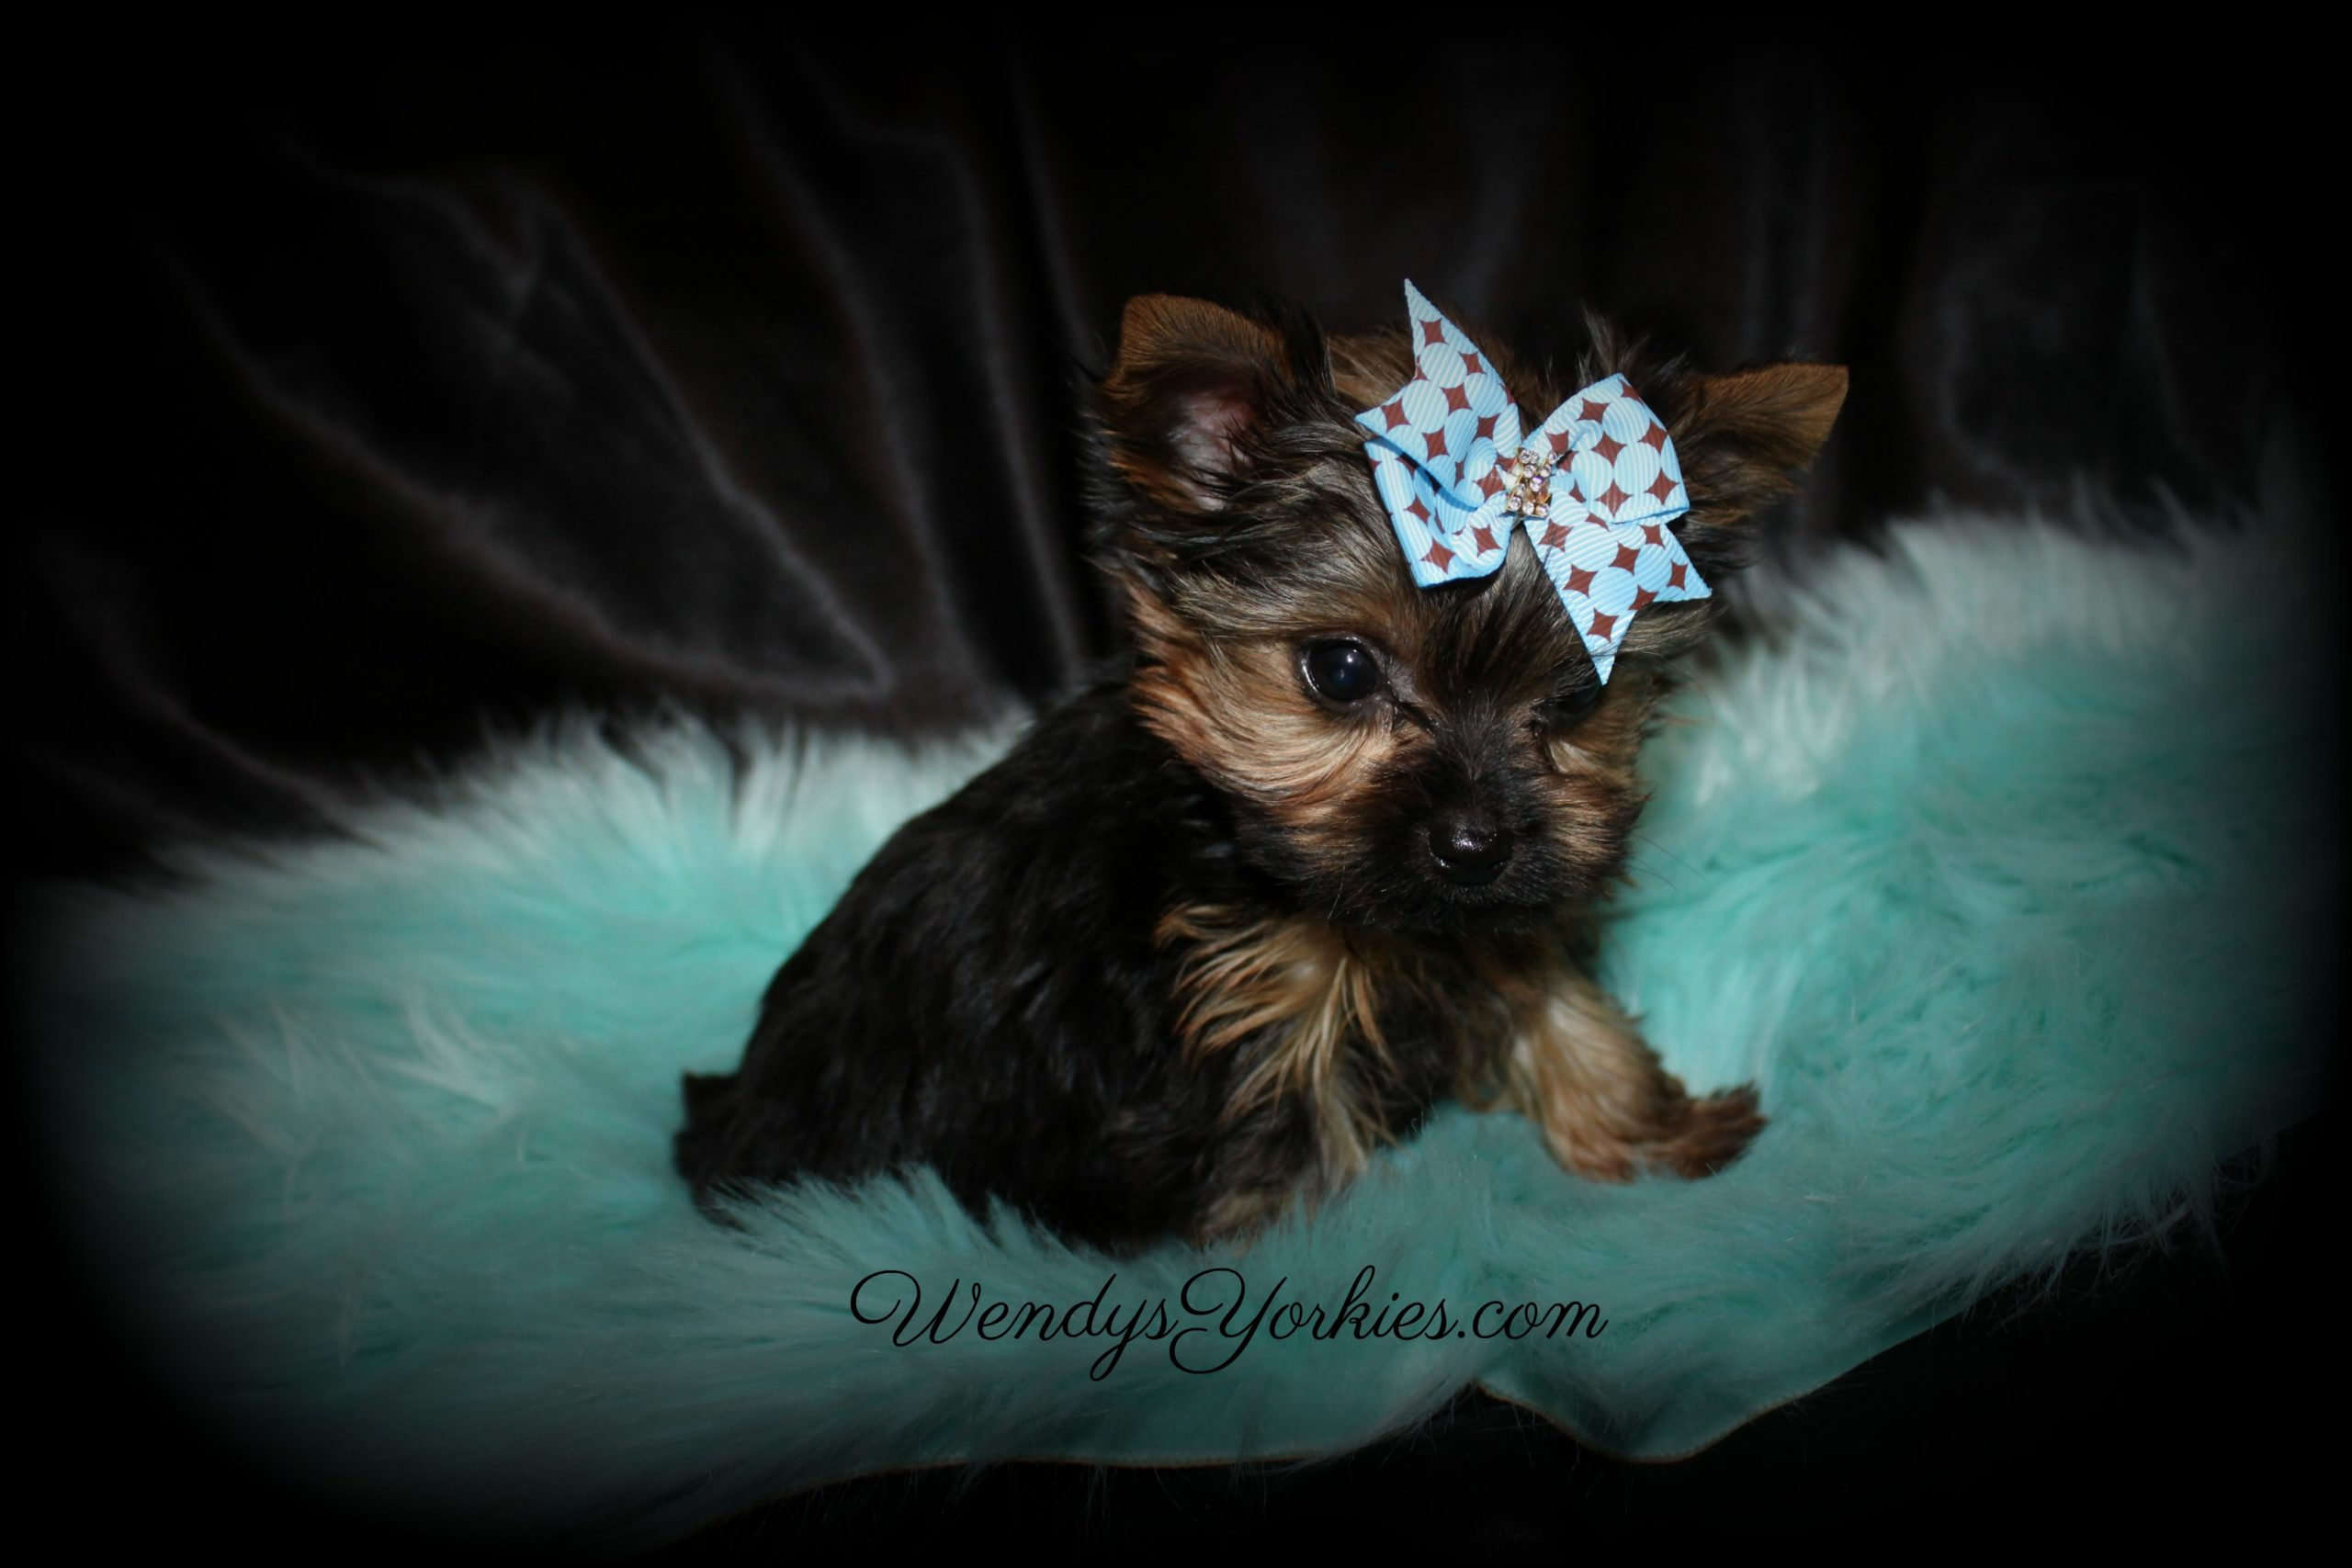 Teenie Male Yorkie puppy, Chloe m1, WendysYorkies.com